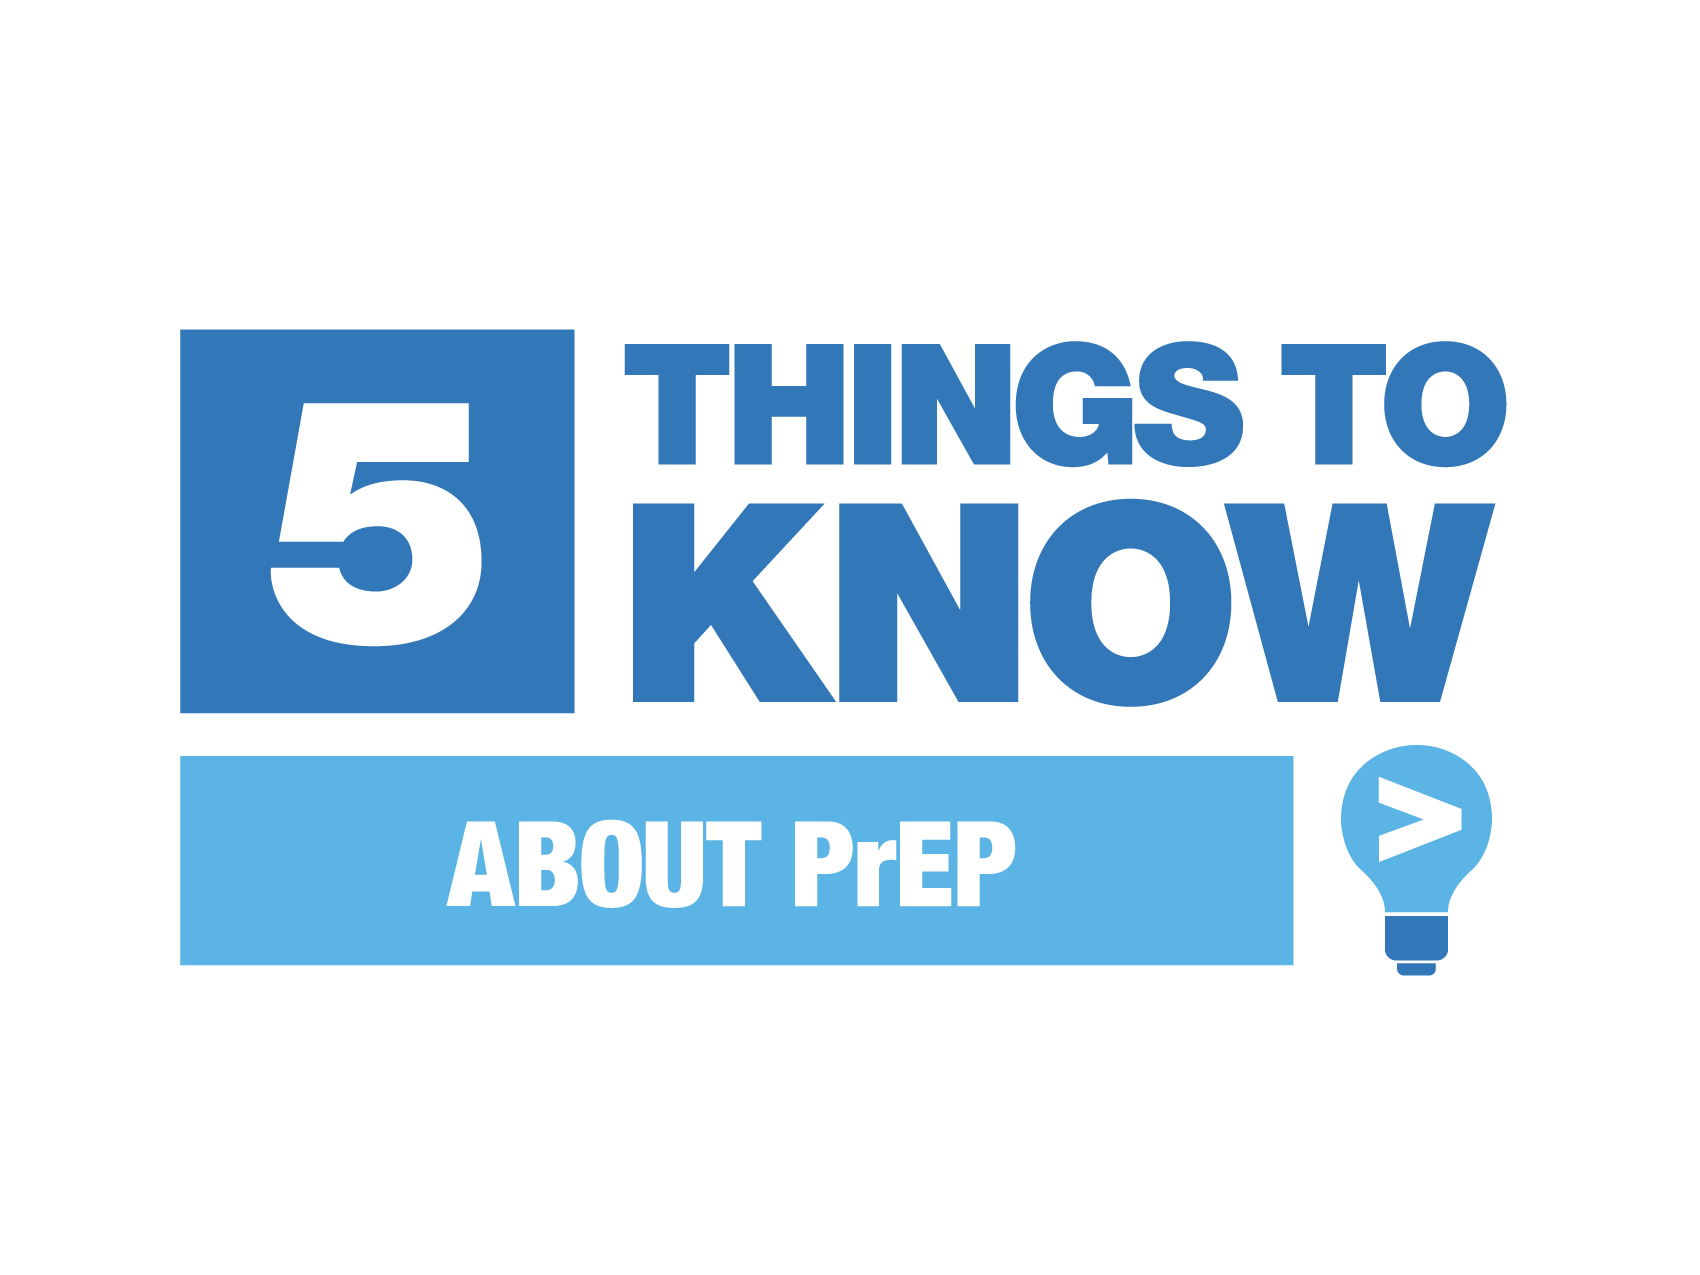 Blue and white Five Things To Know About PrEP graphic on white background